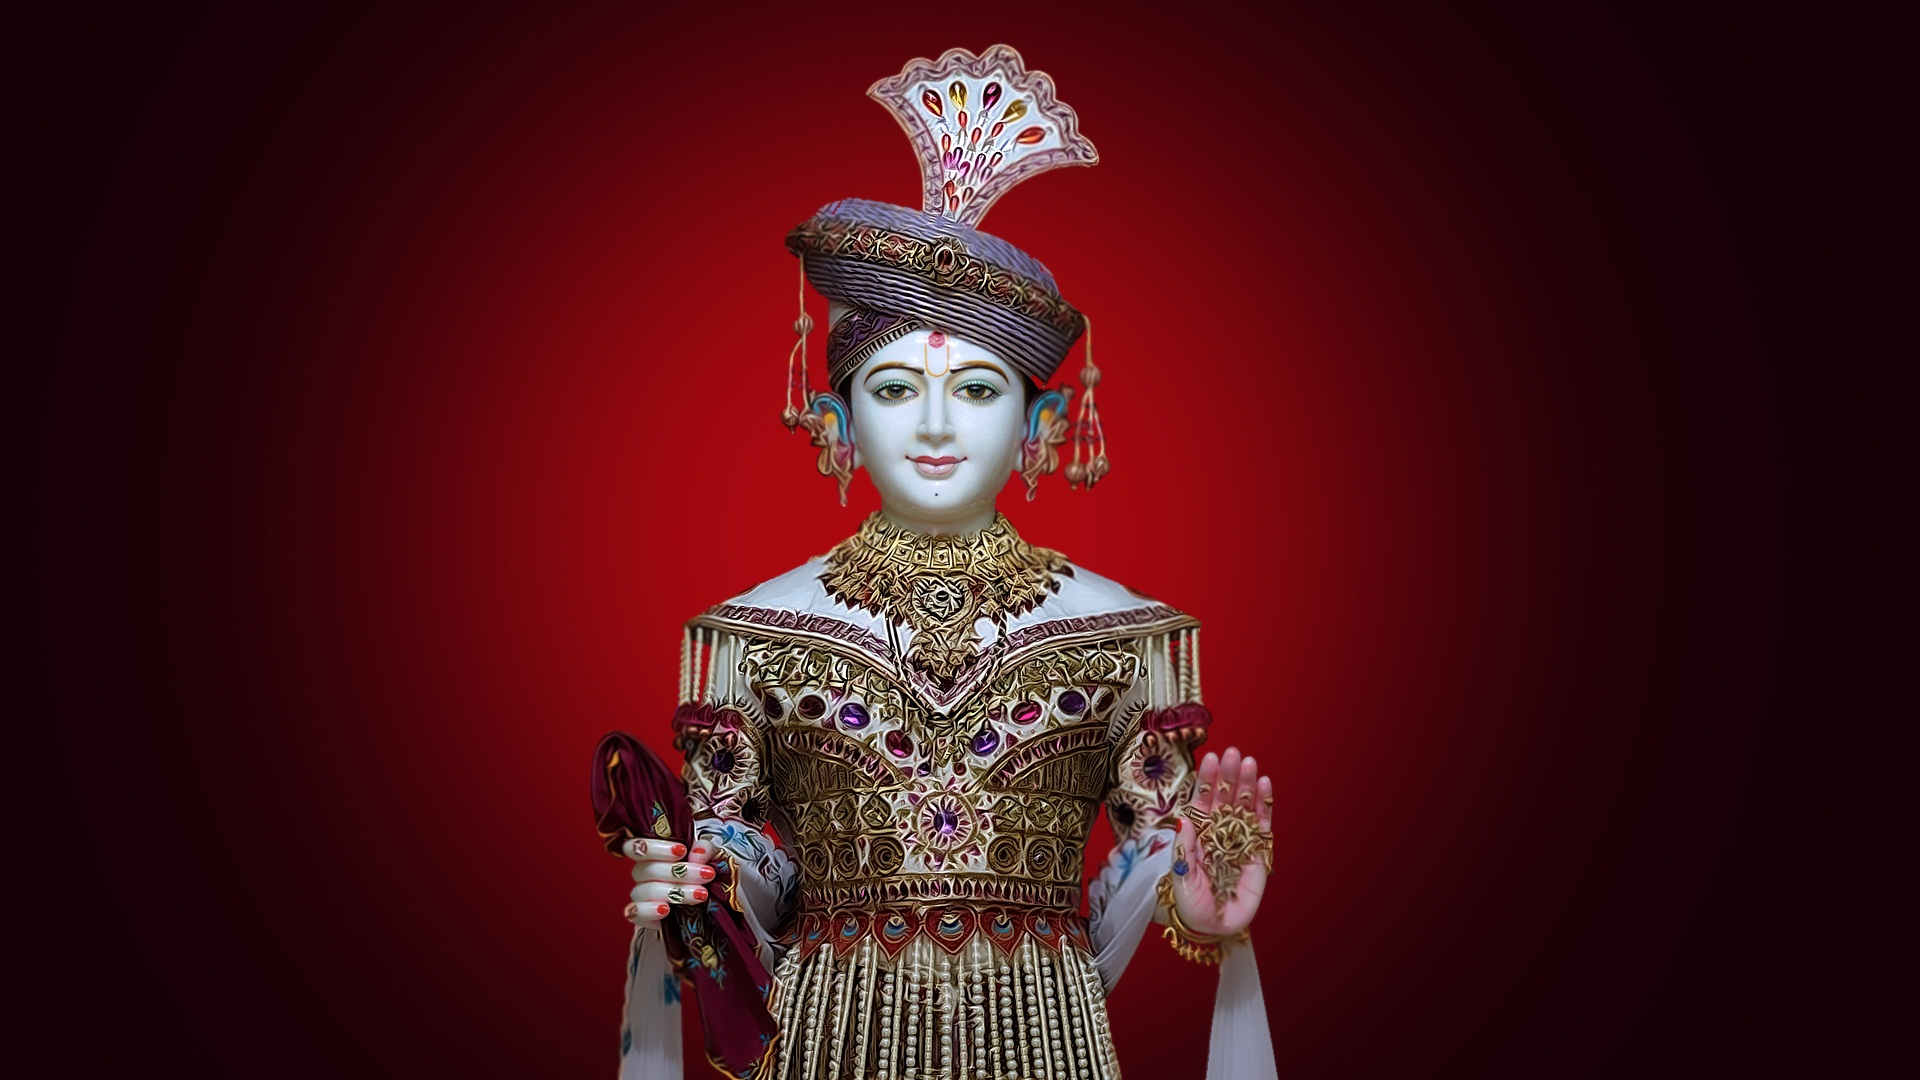 Swaminarayan Full HD Wallpaper | Swaminarayan Photos | Swaminarayan HD Wallpaper